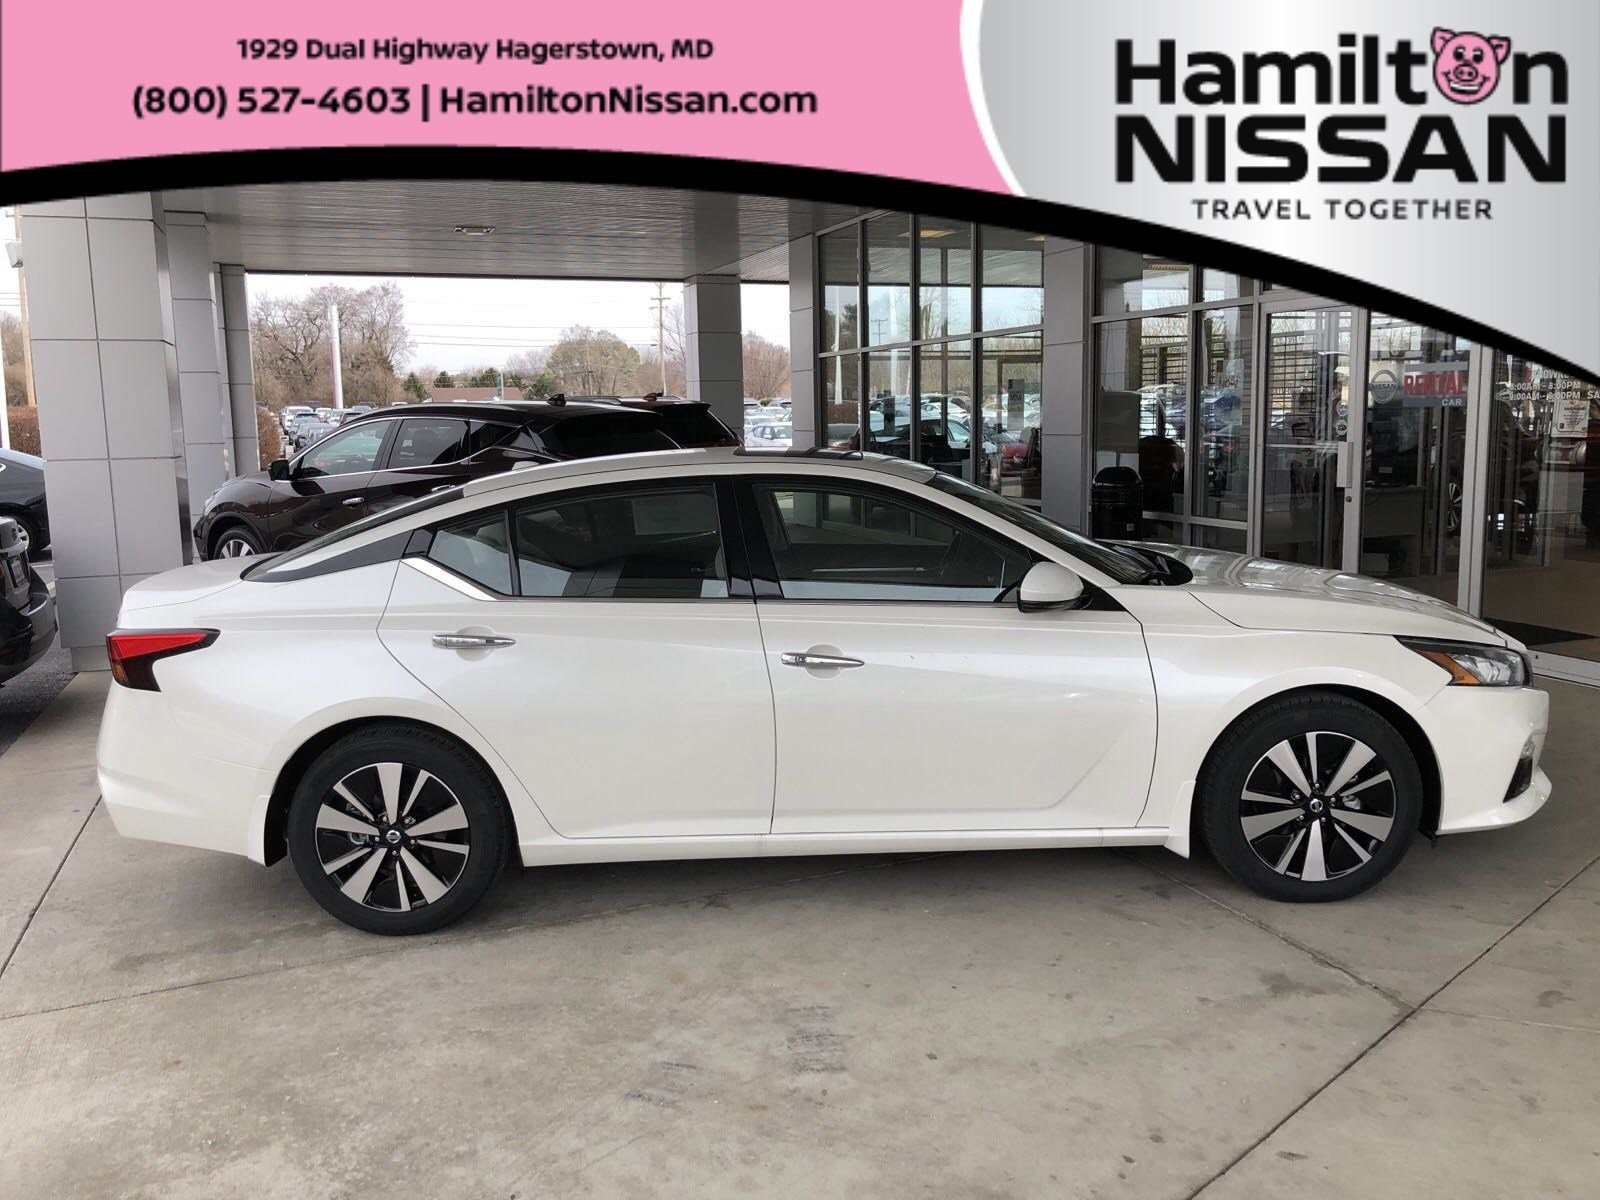 New 2019 Nissan Altima 2 5 SV For Sale in Hagerstown, MD | 1N4BL4DV7KC200068